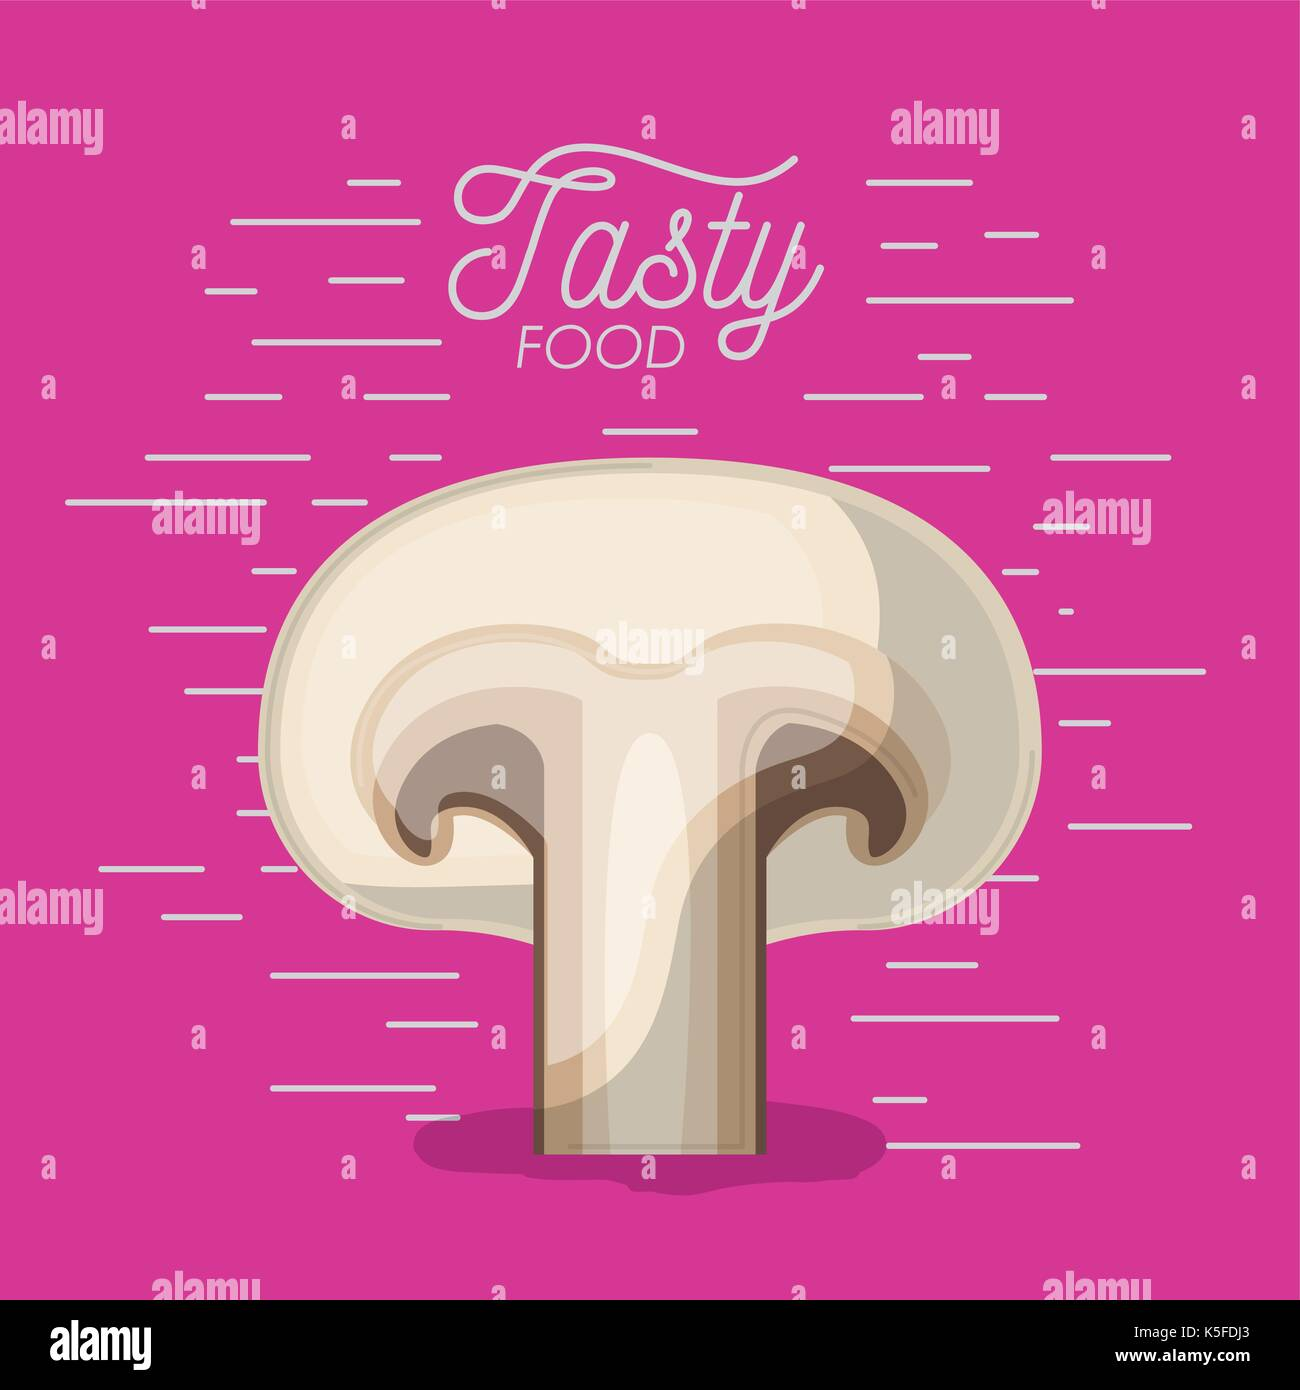 mushroom tasty food poster in magenta background - Stock Image